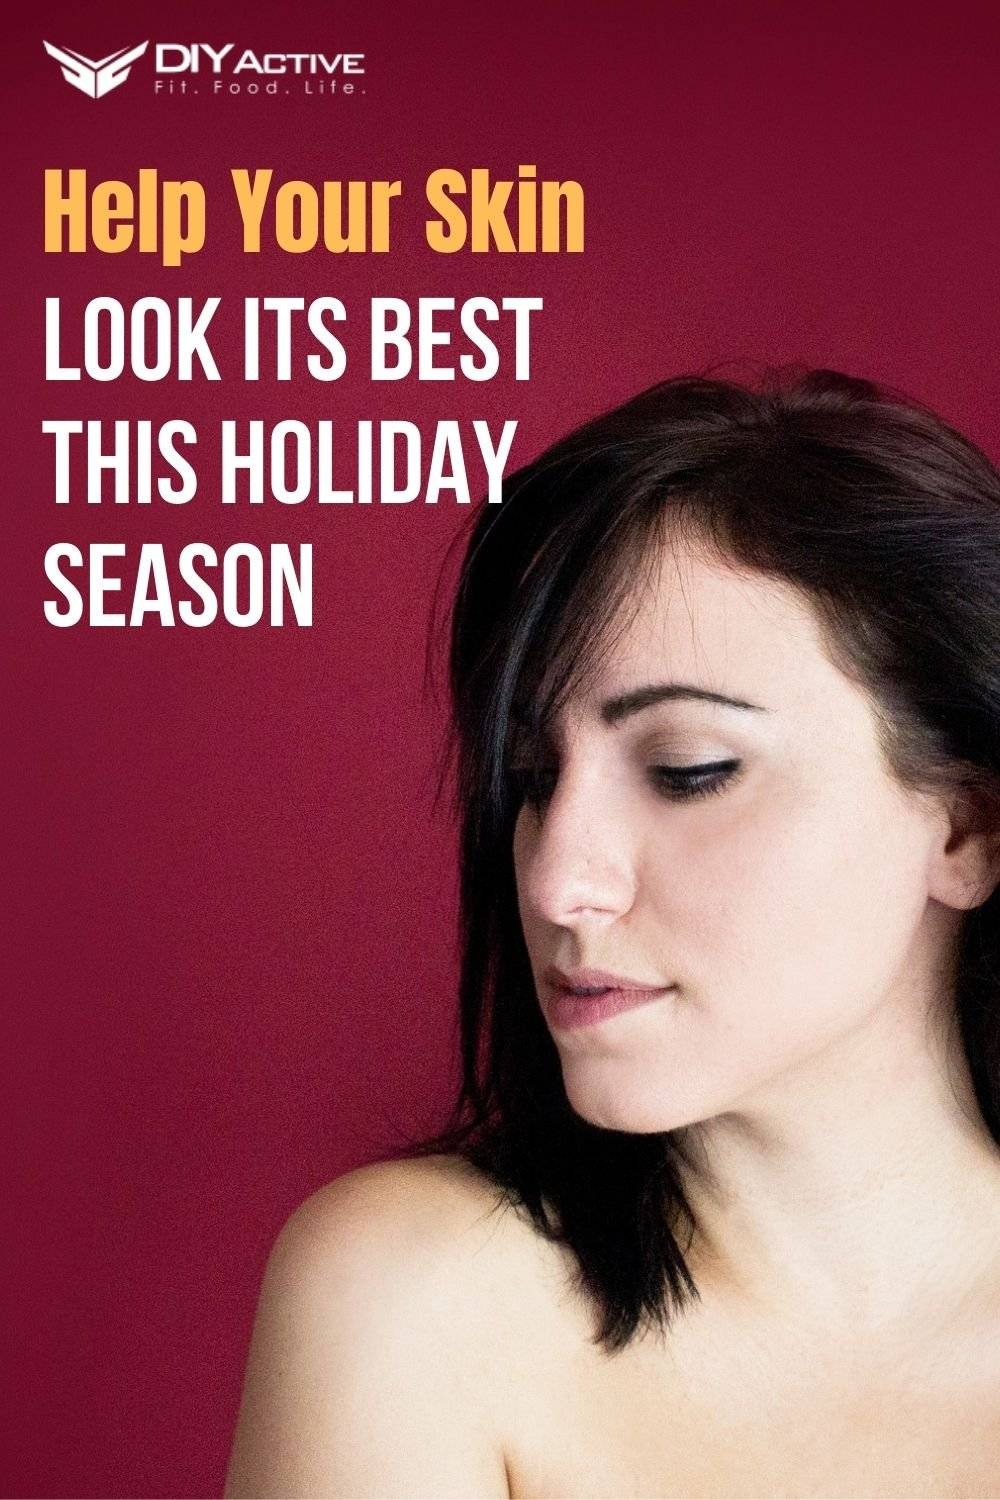 Tips to Help Your Skin Look Its Best This Holiday Season